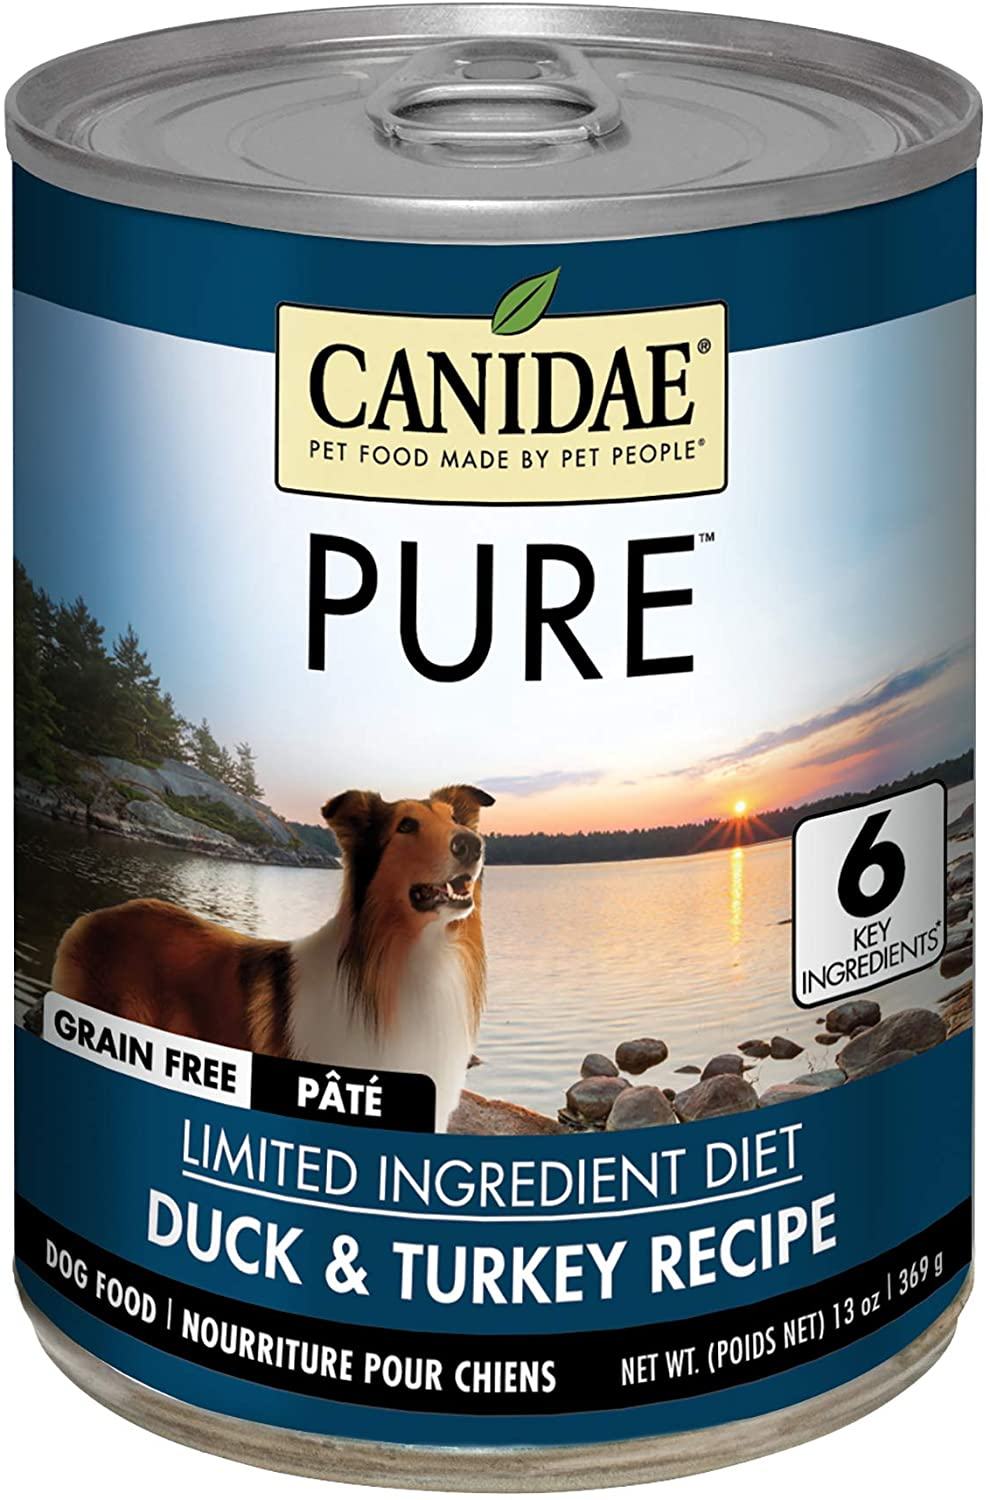 Canide Grain Free PURE Canned Formula Dog Food With Duck & Turkey, 13 oz